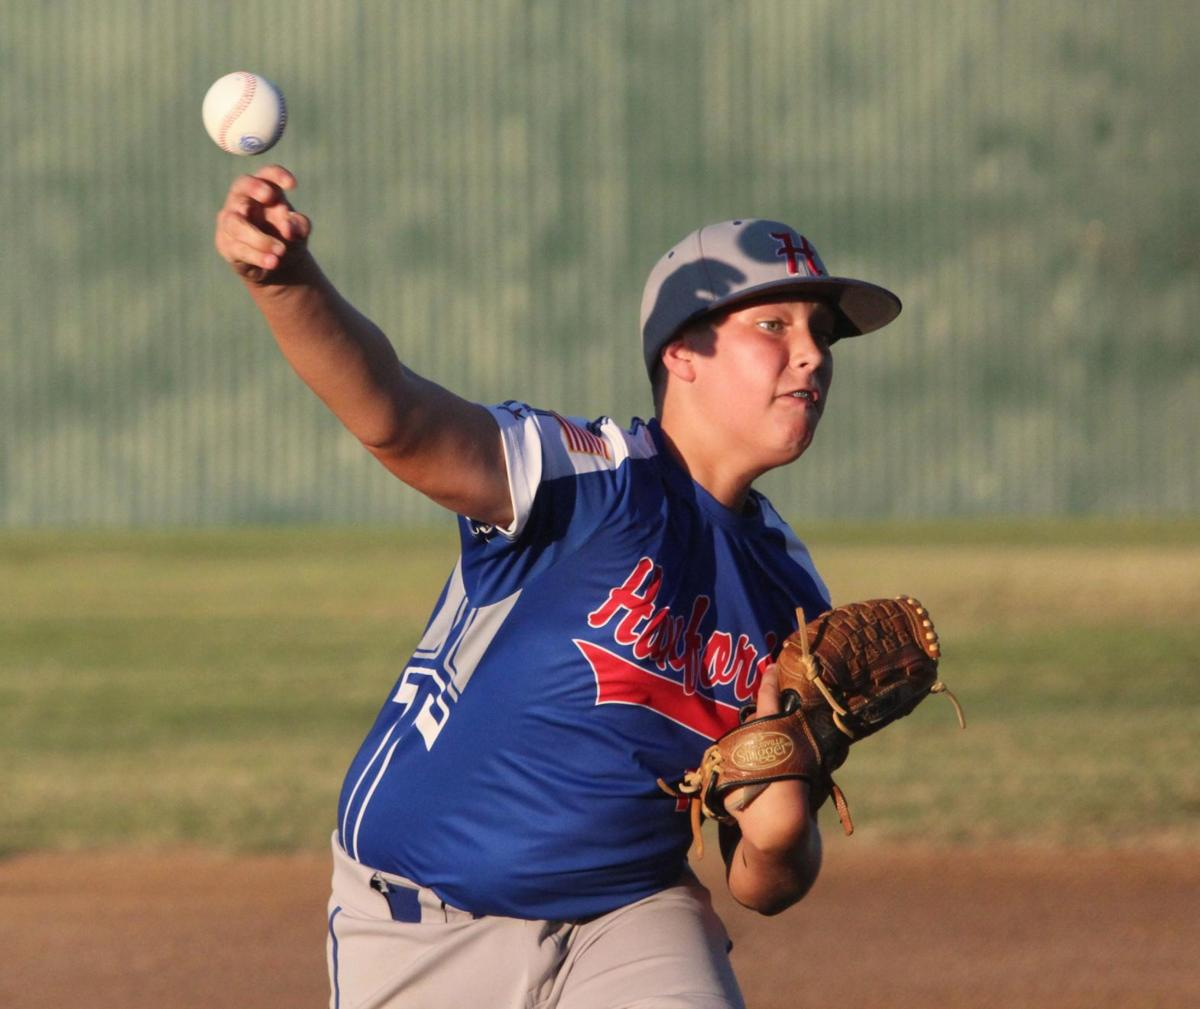 Redding's pitching, Souza's bat power All-Stars to victory